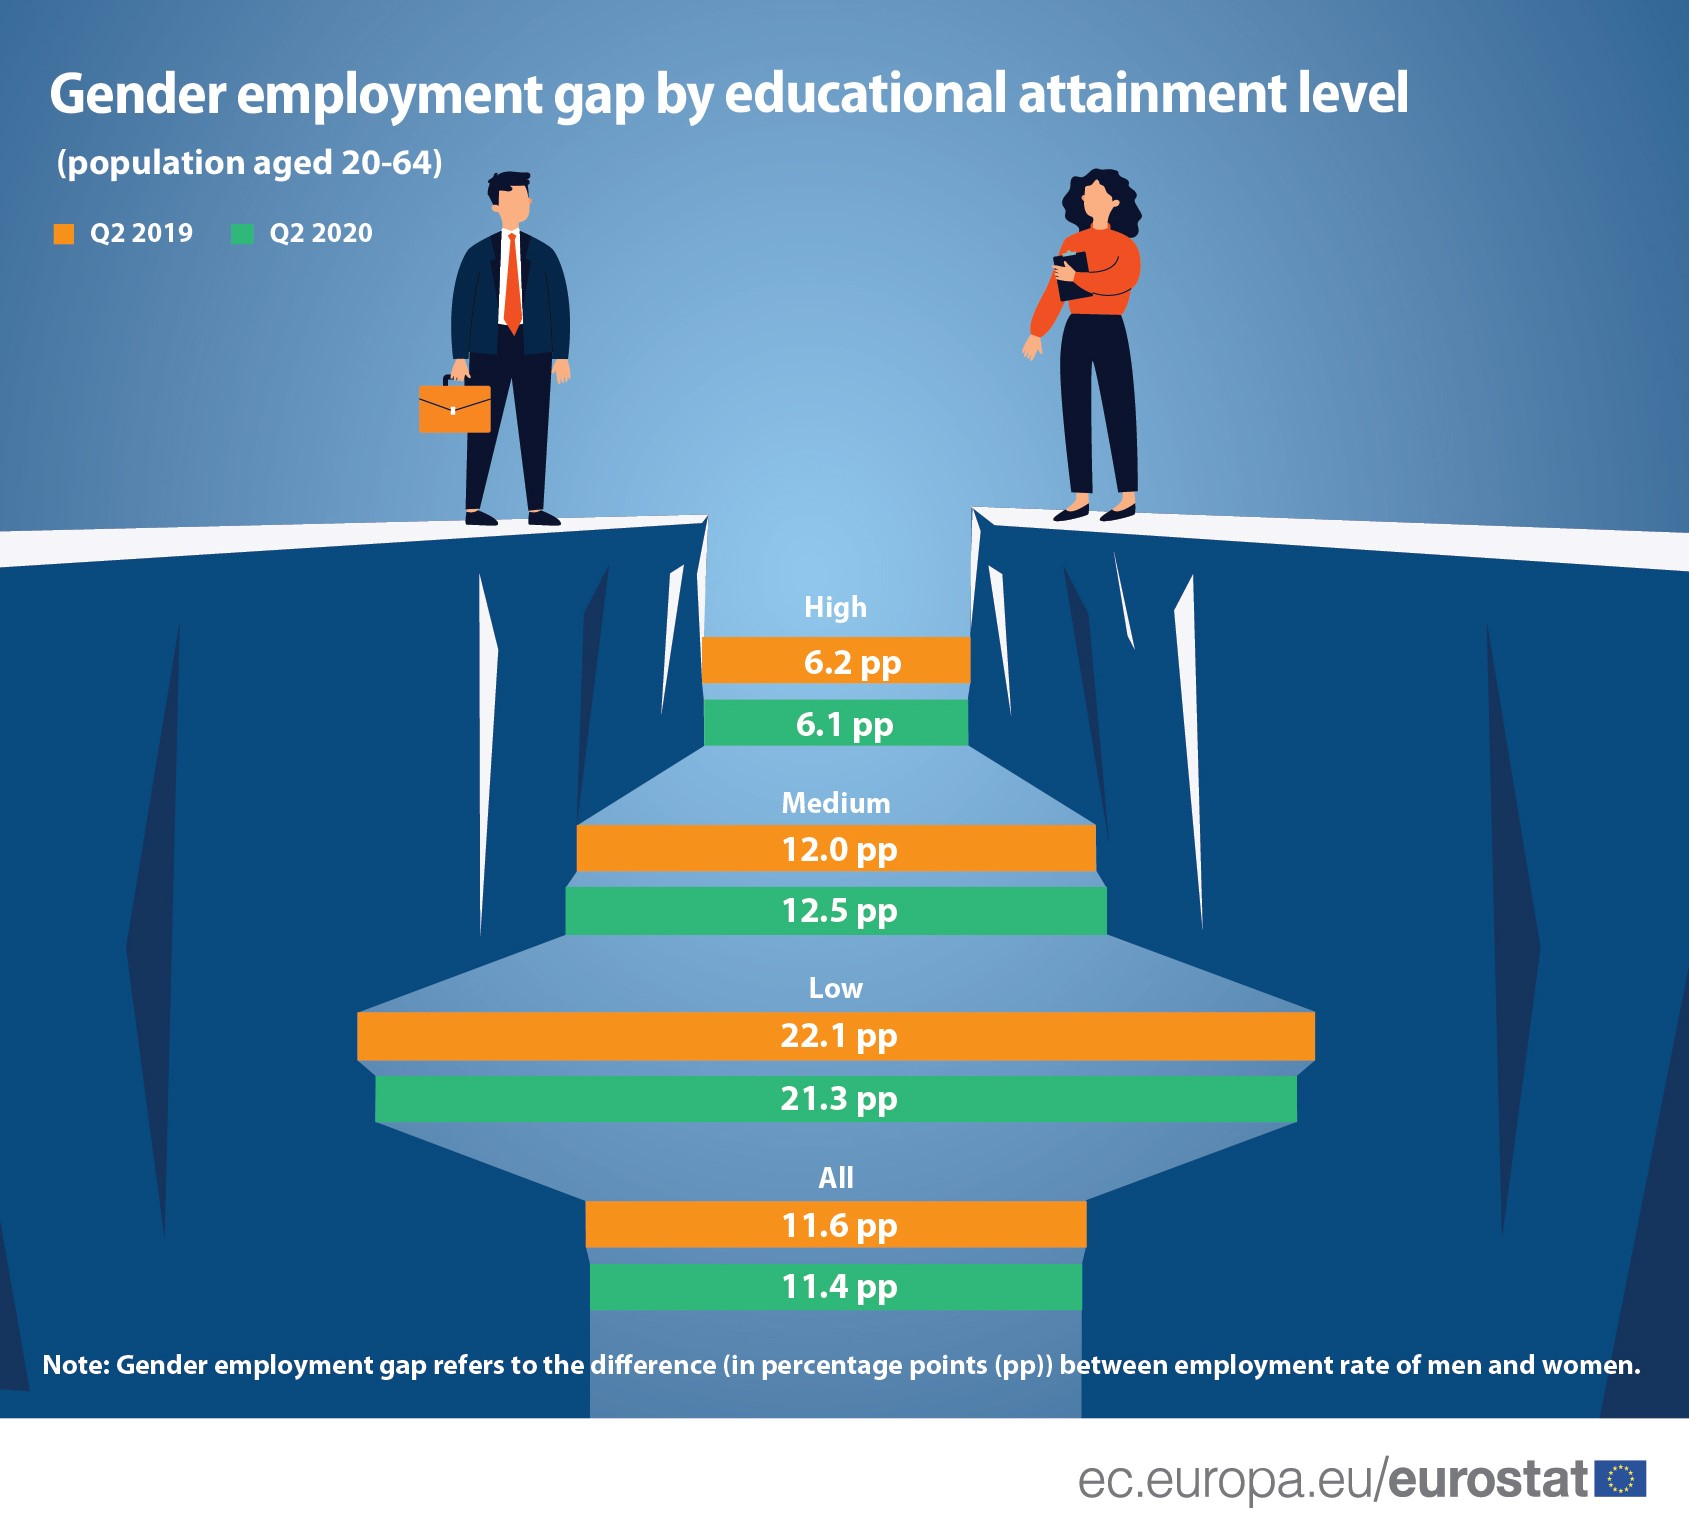 Gender employment gap by education level in Q2 2020